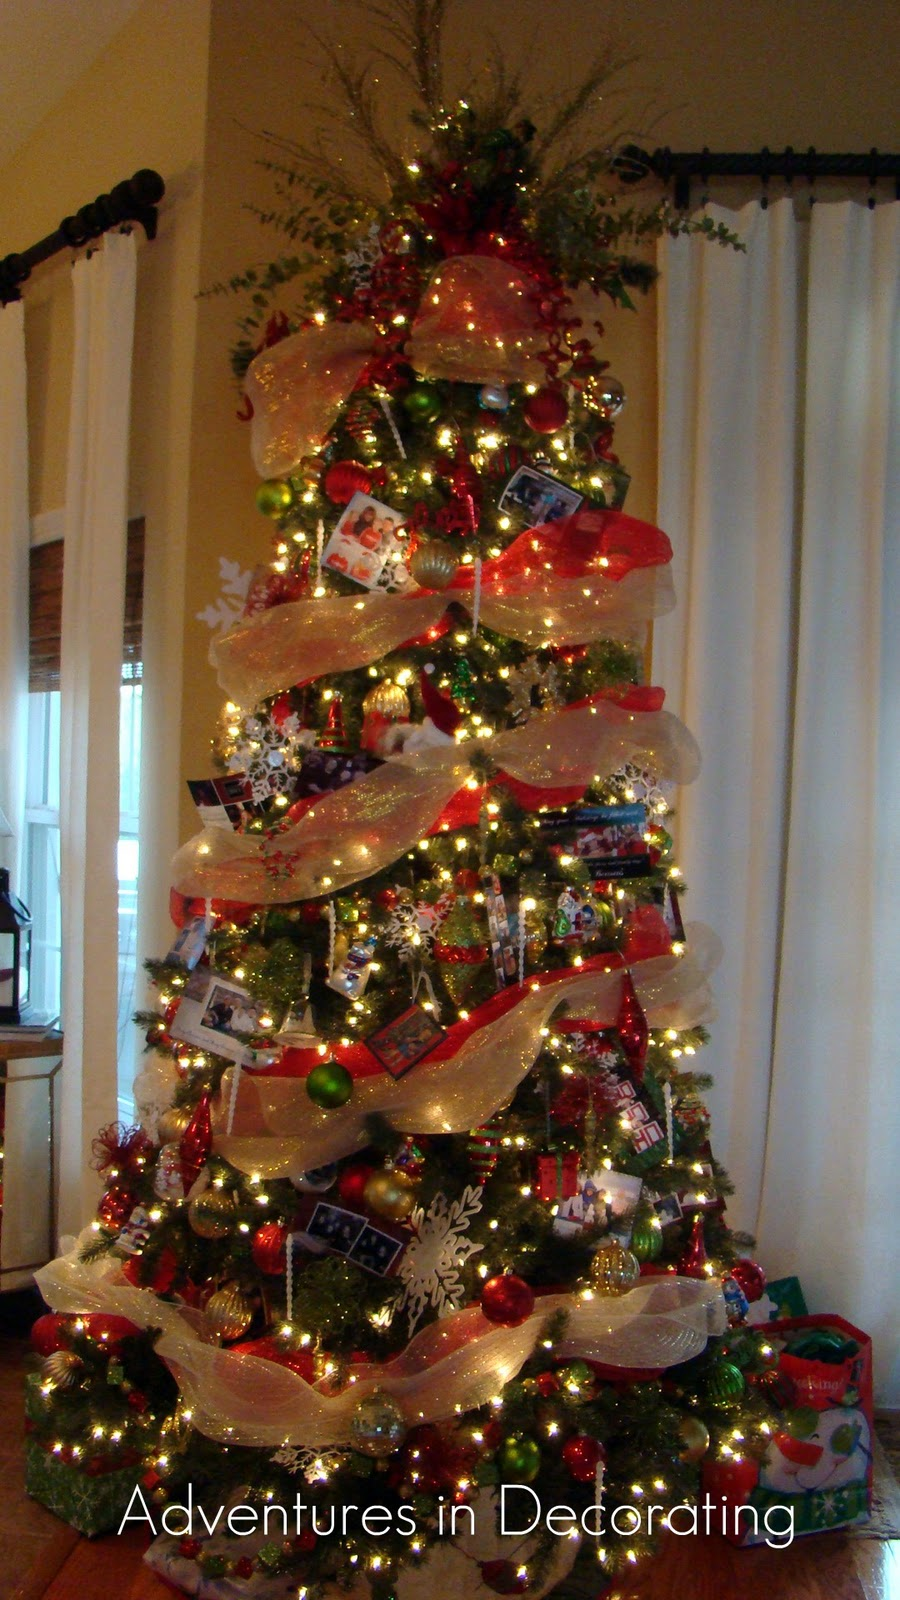 How To Decorate Christmas Tree With Poly Mesh Ribbon : Adventures in decorating christmas great room